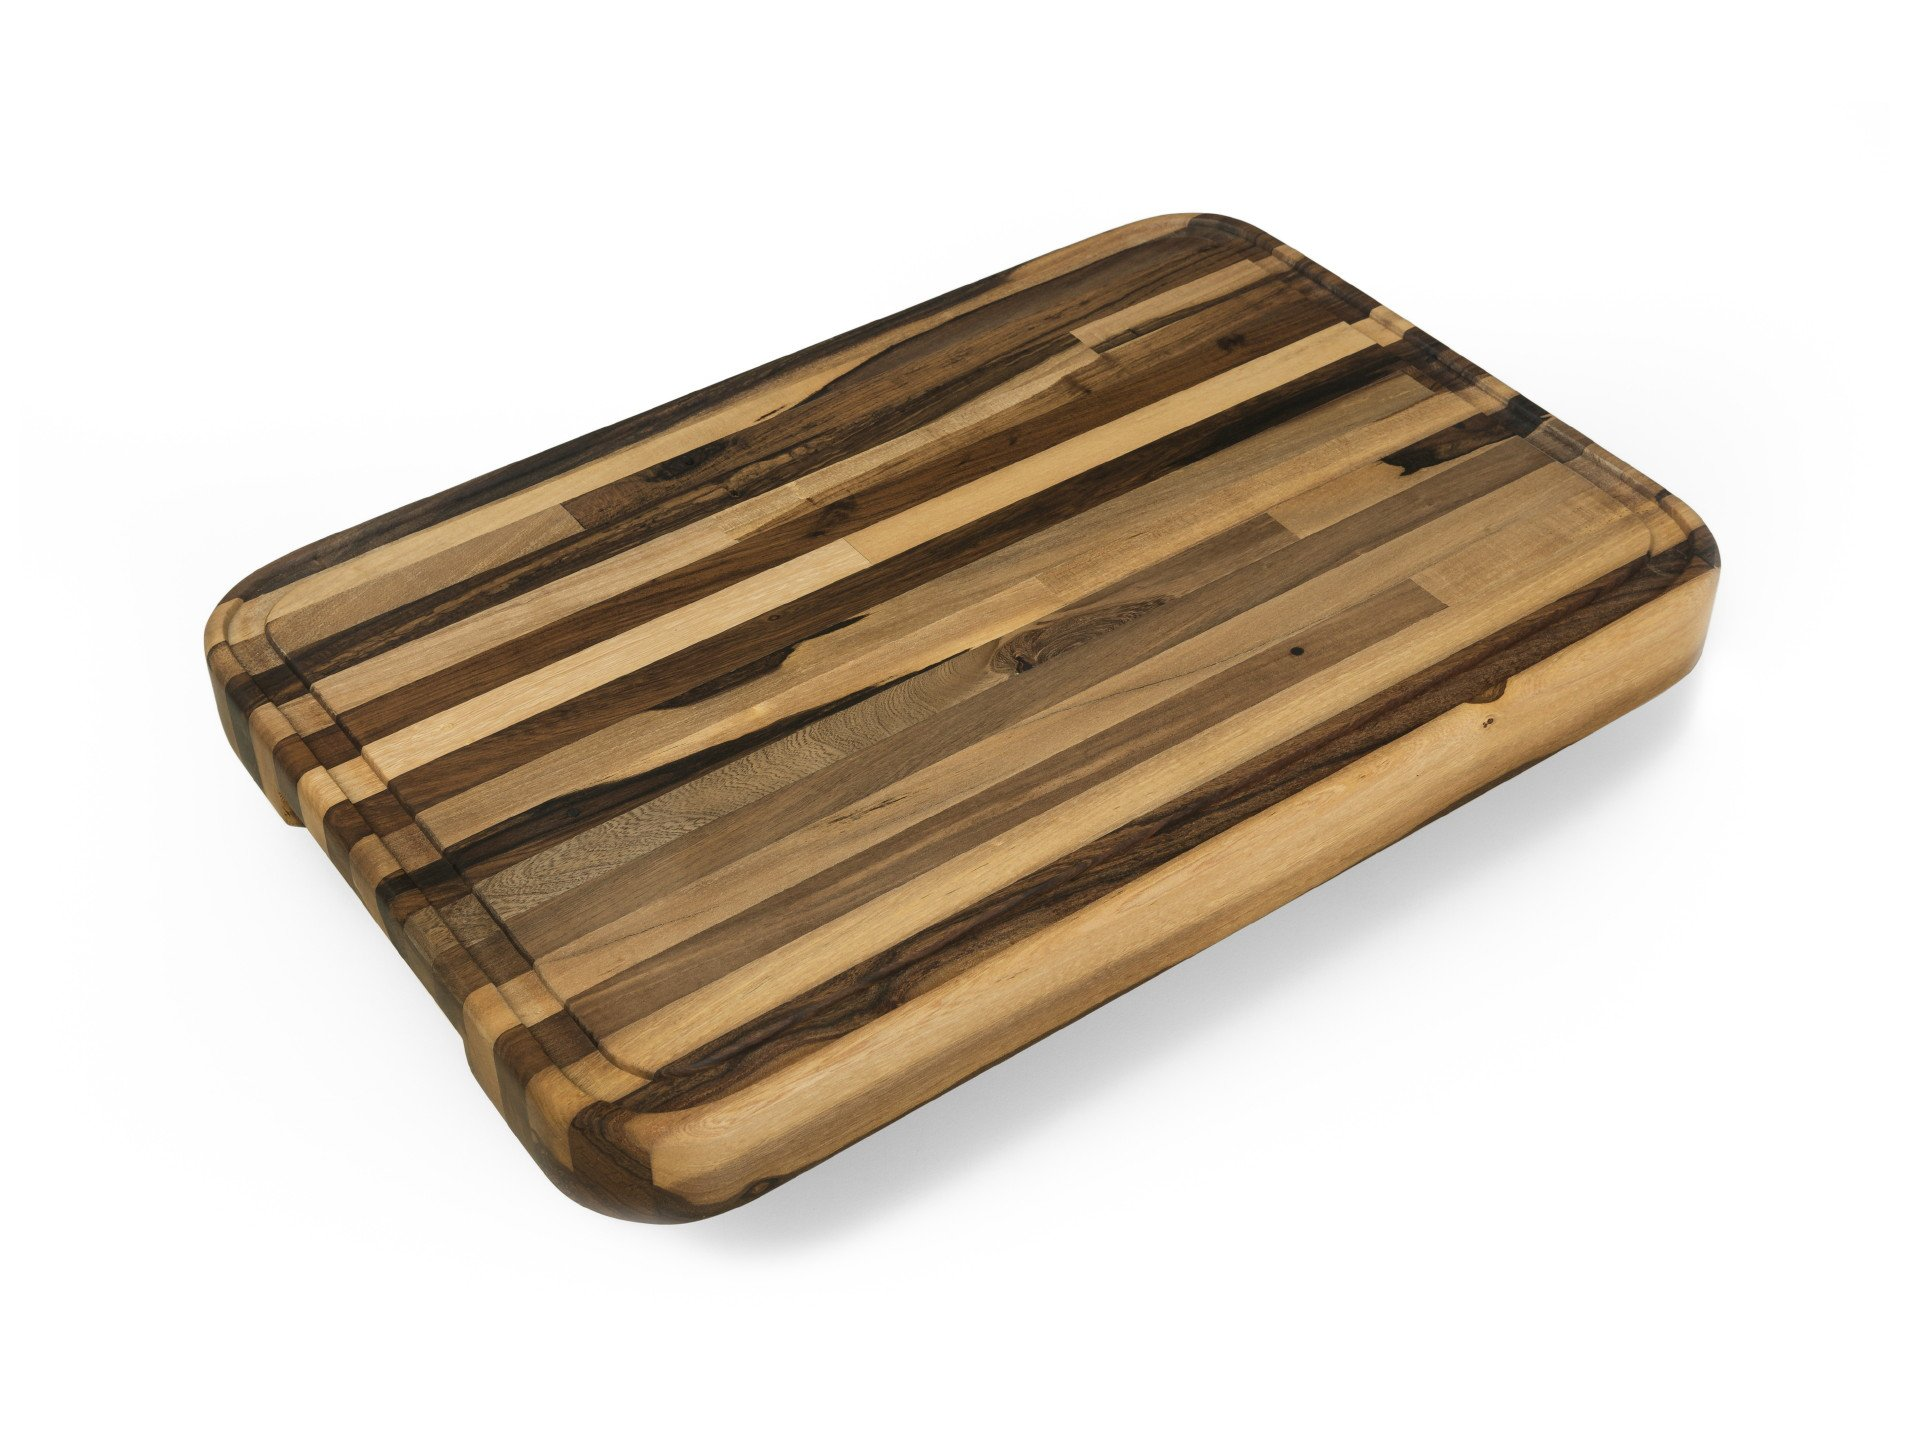 Brazilian Pecan Wood Cutting Board 12'' x 20'' x 1 1/8''